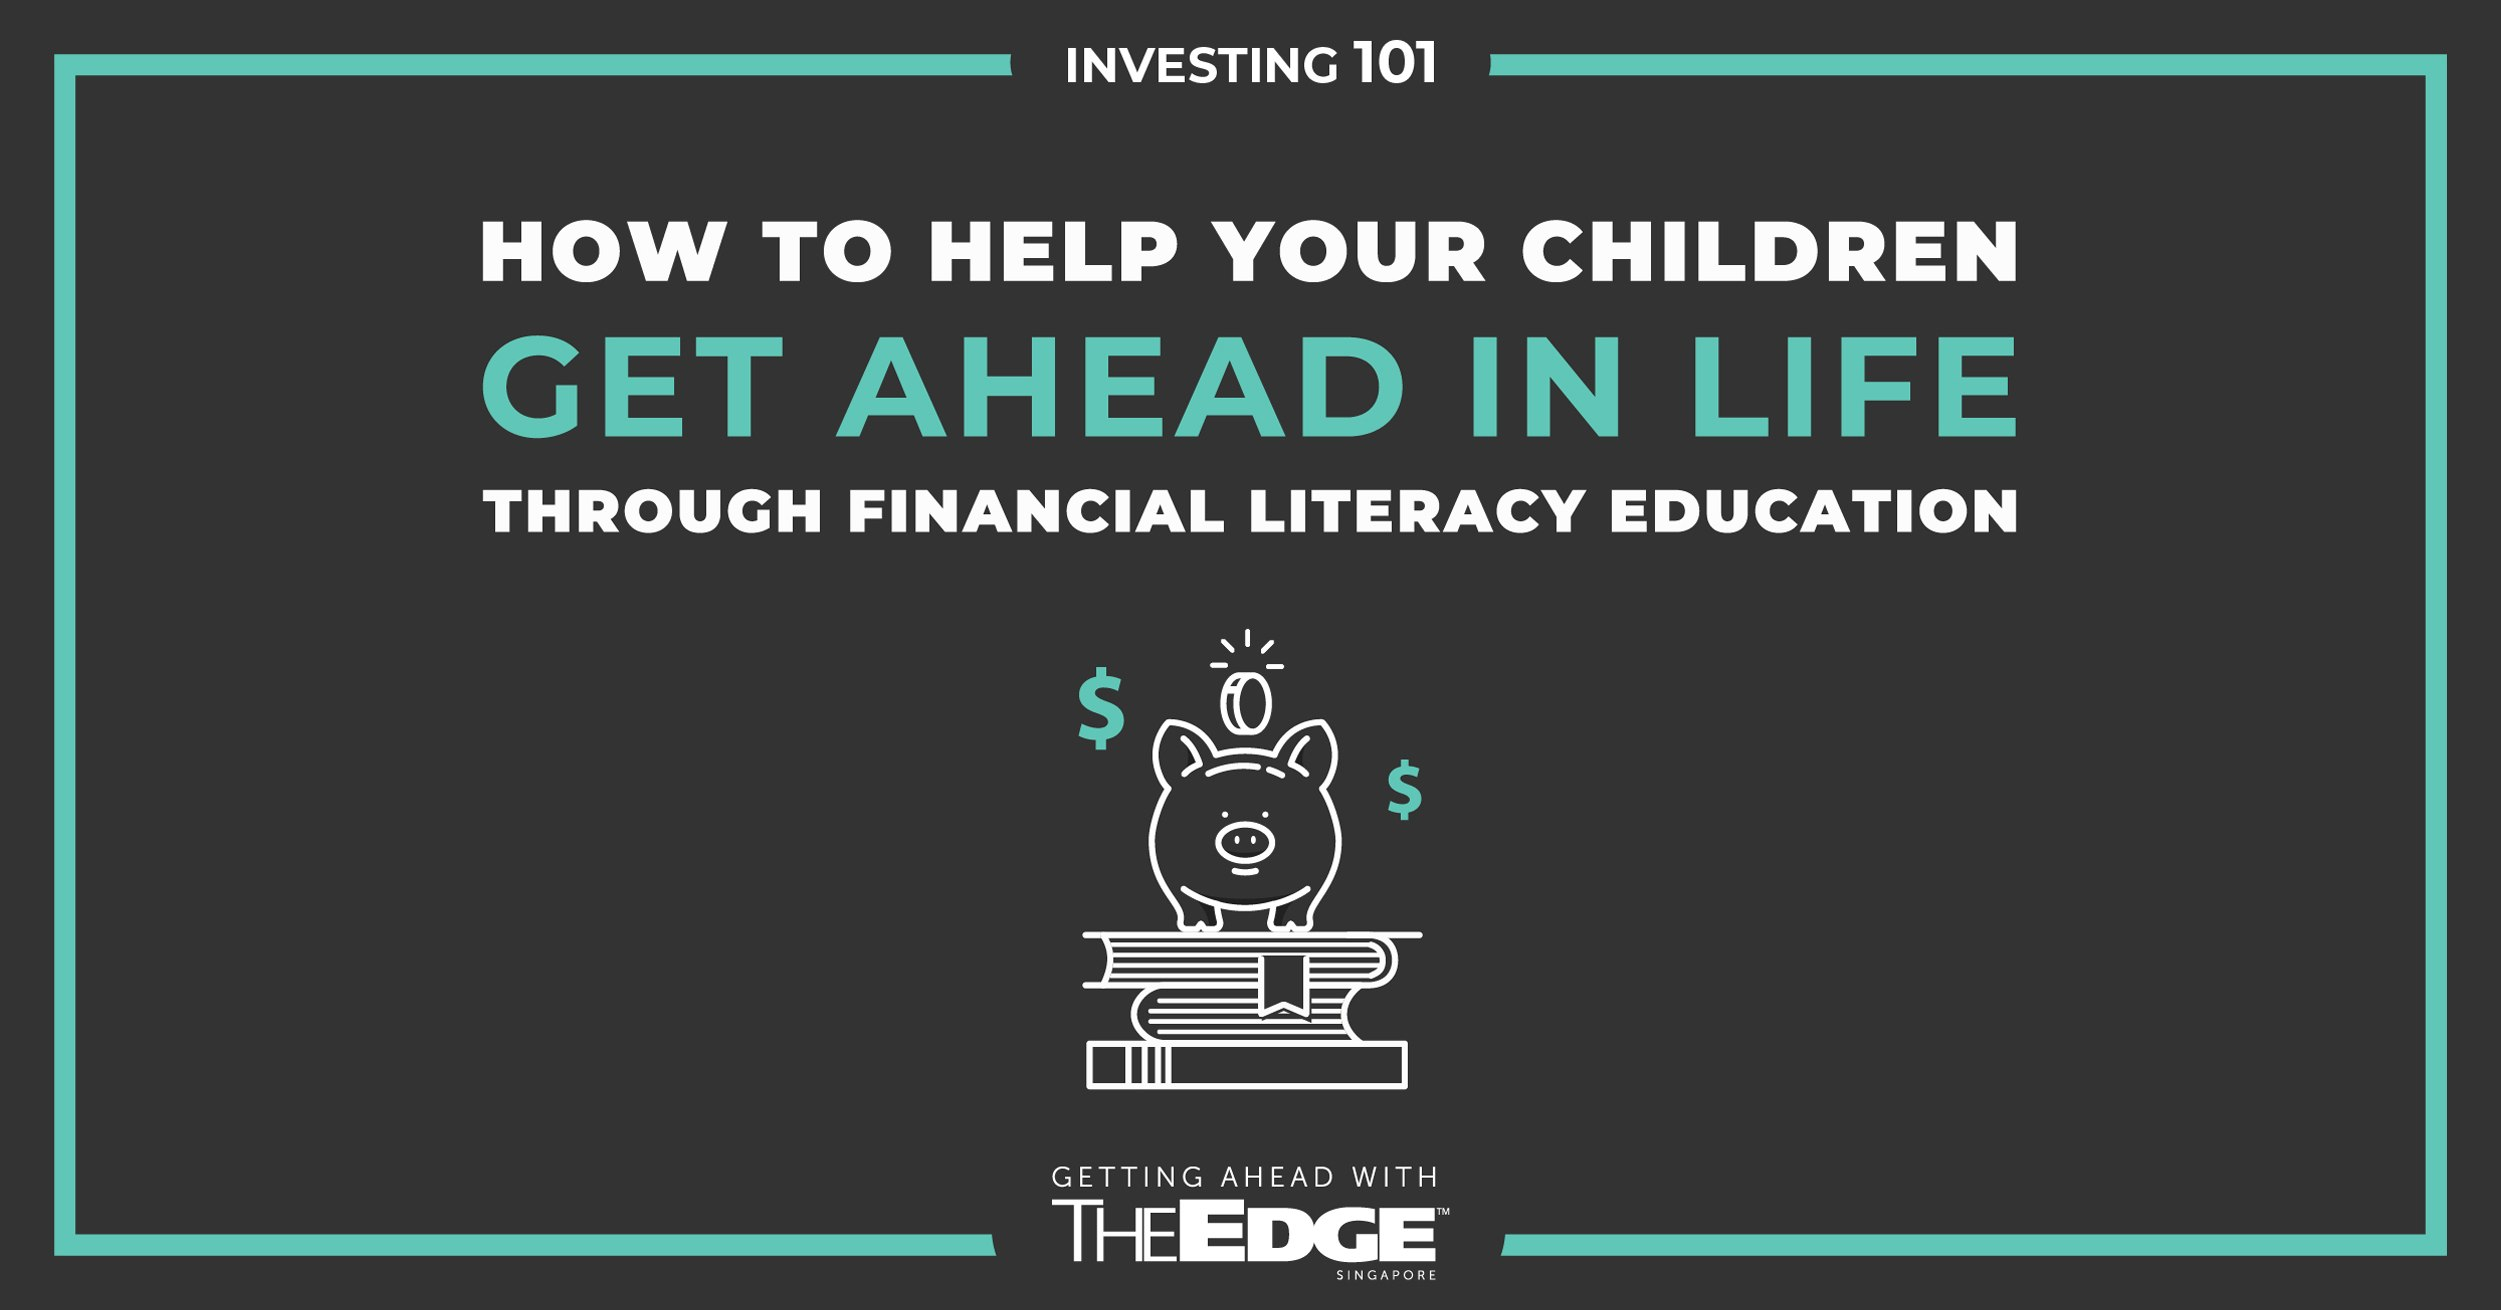 How to help your children get ahead in life through financial literacy education